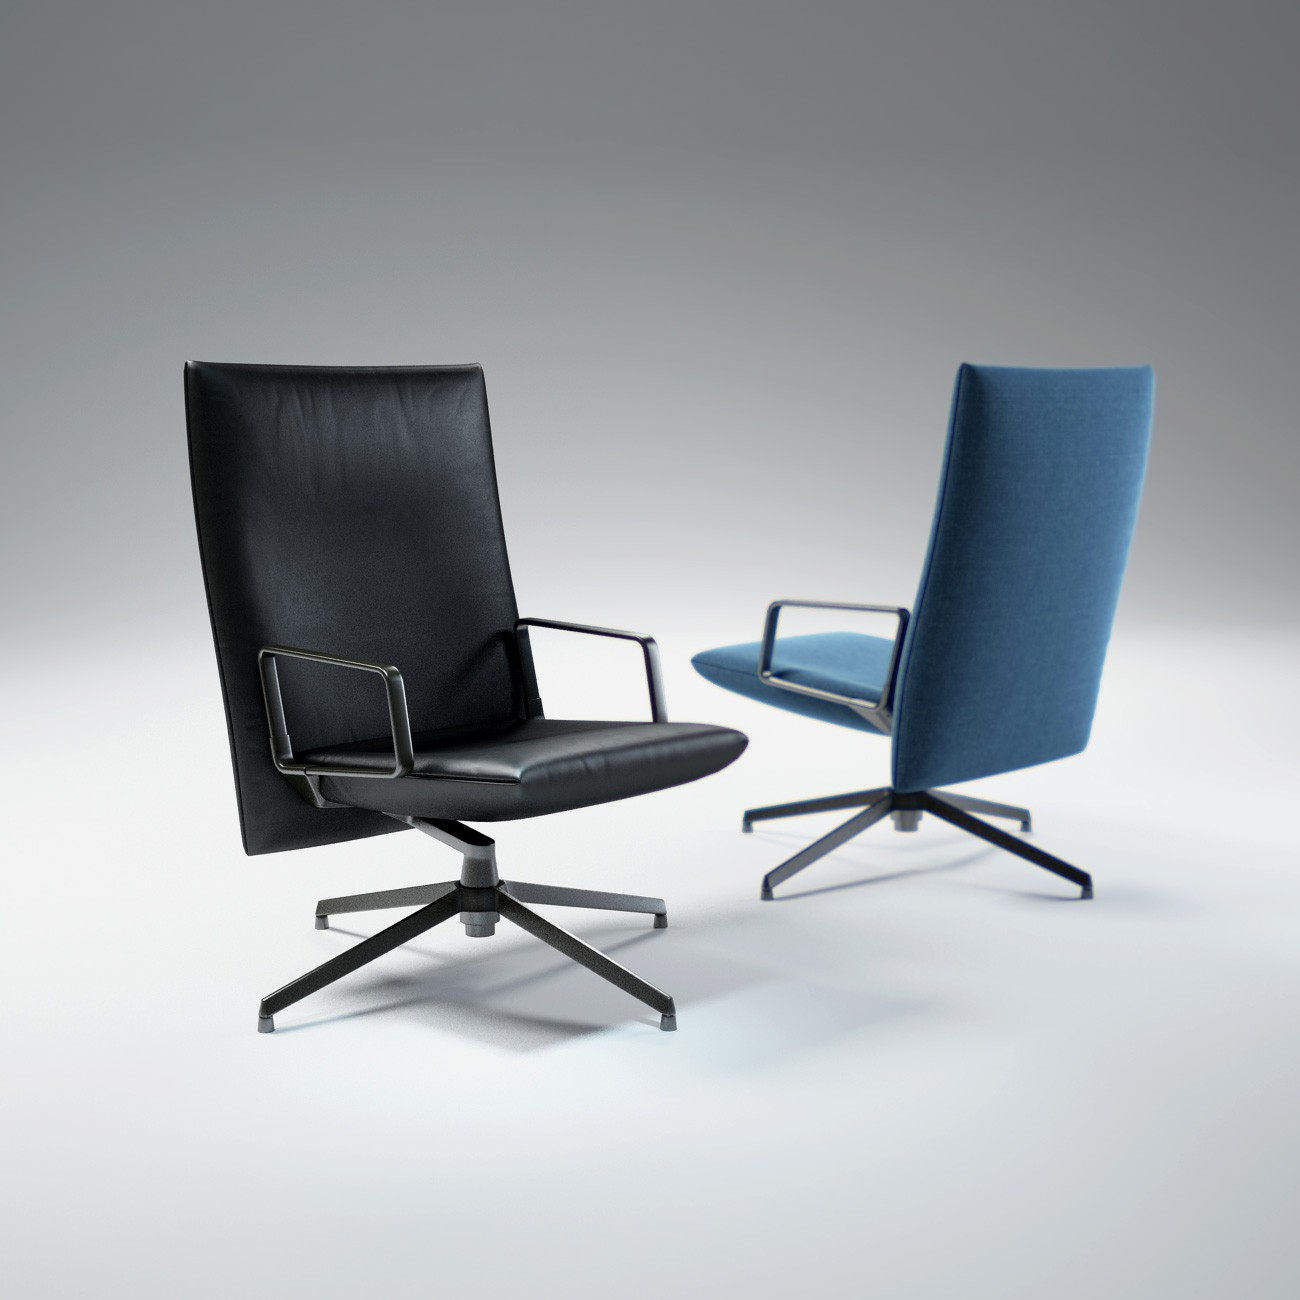 Knoll inc chairs knoll inc knoll tulip armchair platinum base chroma iris fabric reading - Knoll inc chairs ...